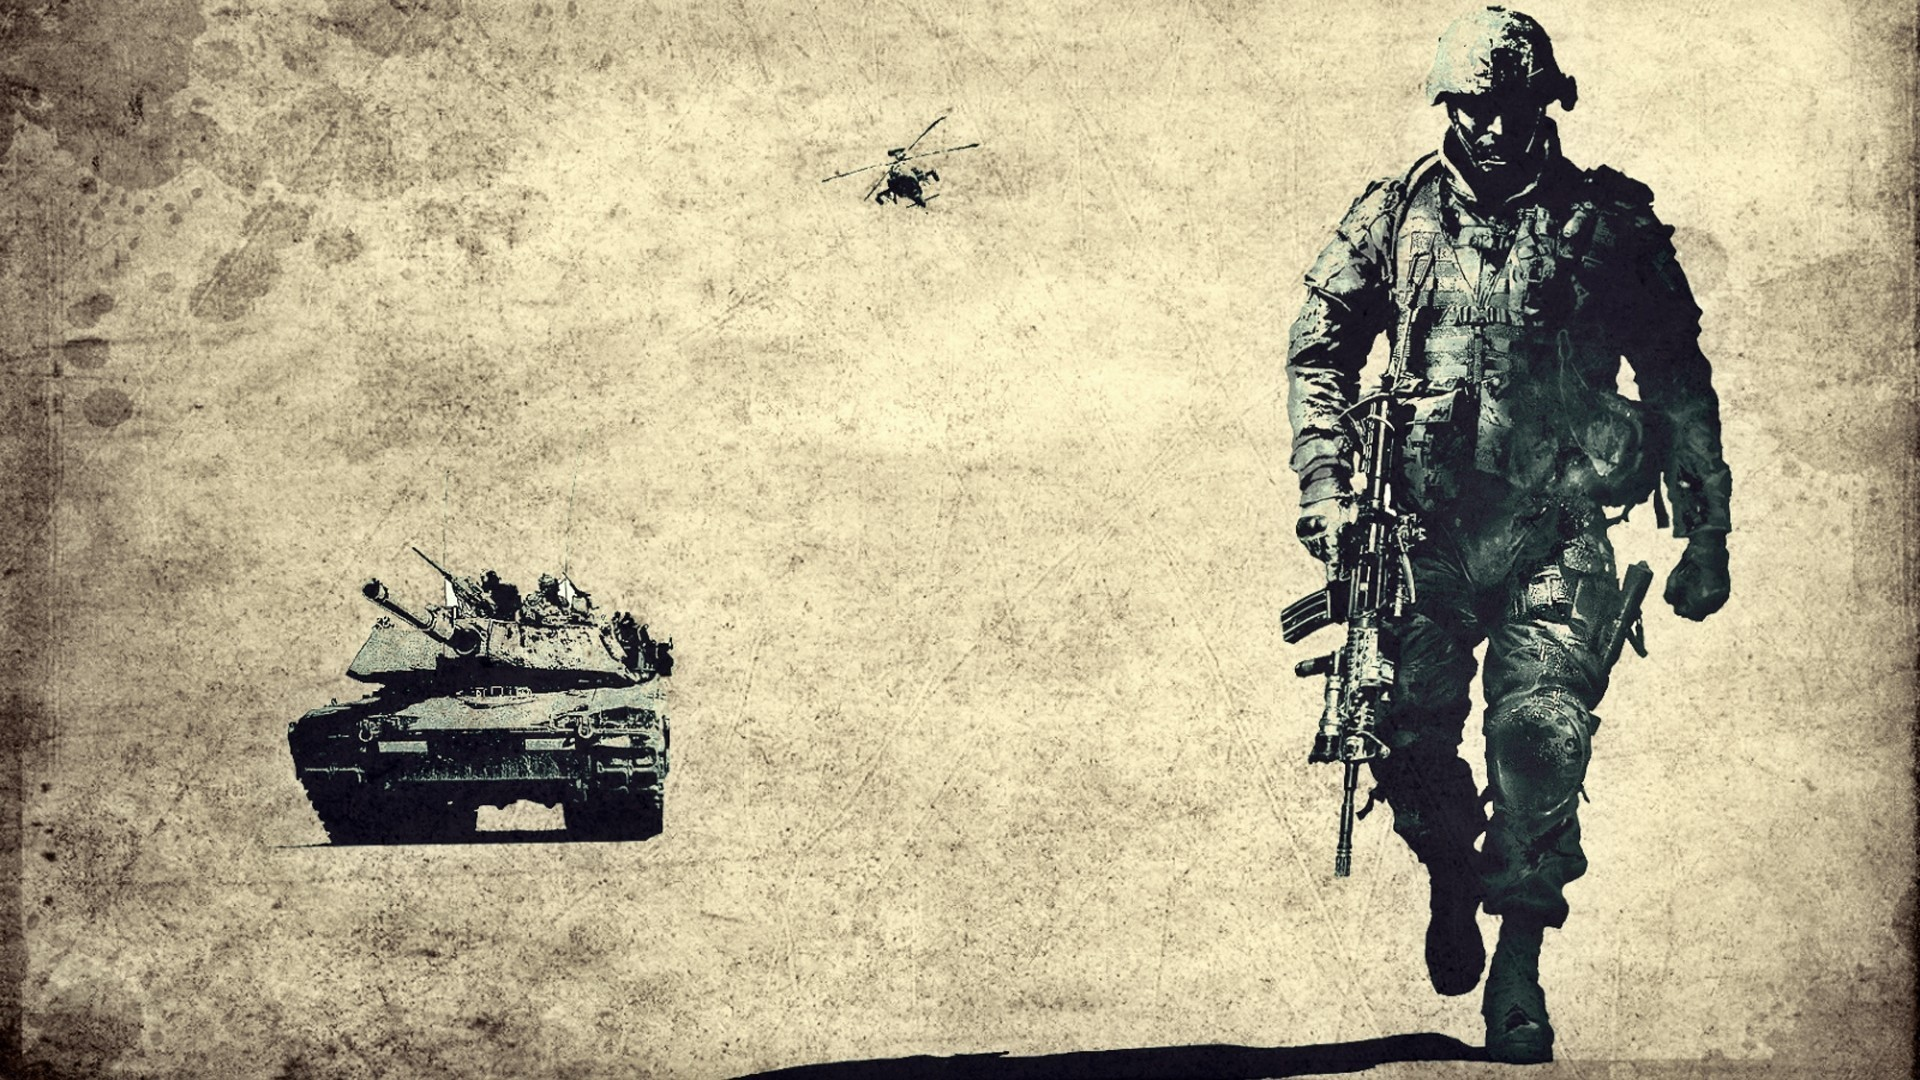 1920x1080 kartandtinki army #wallpaper